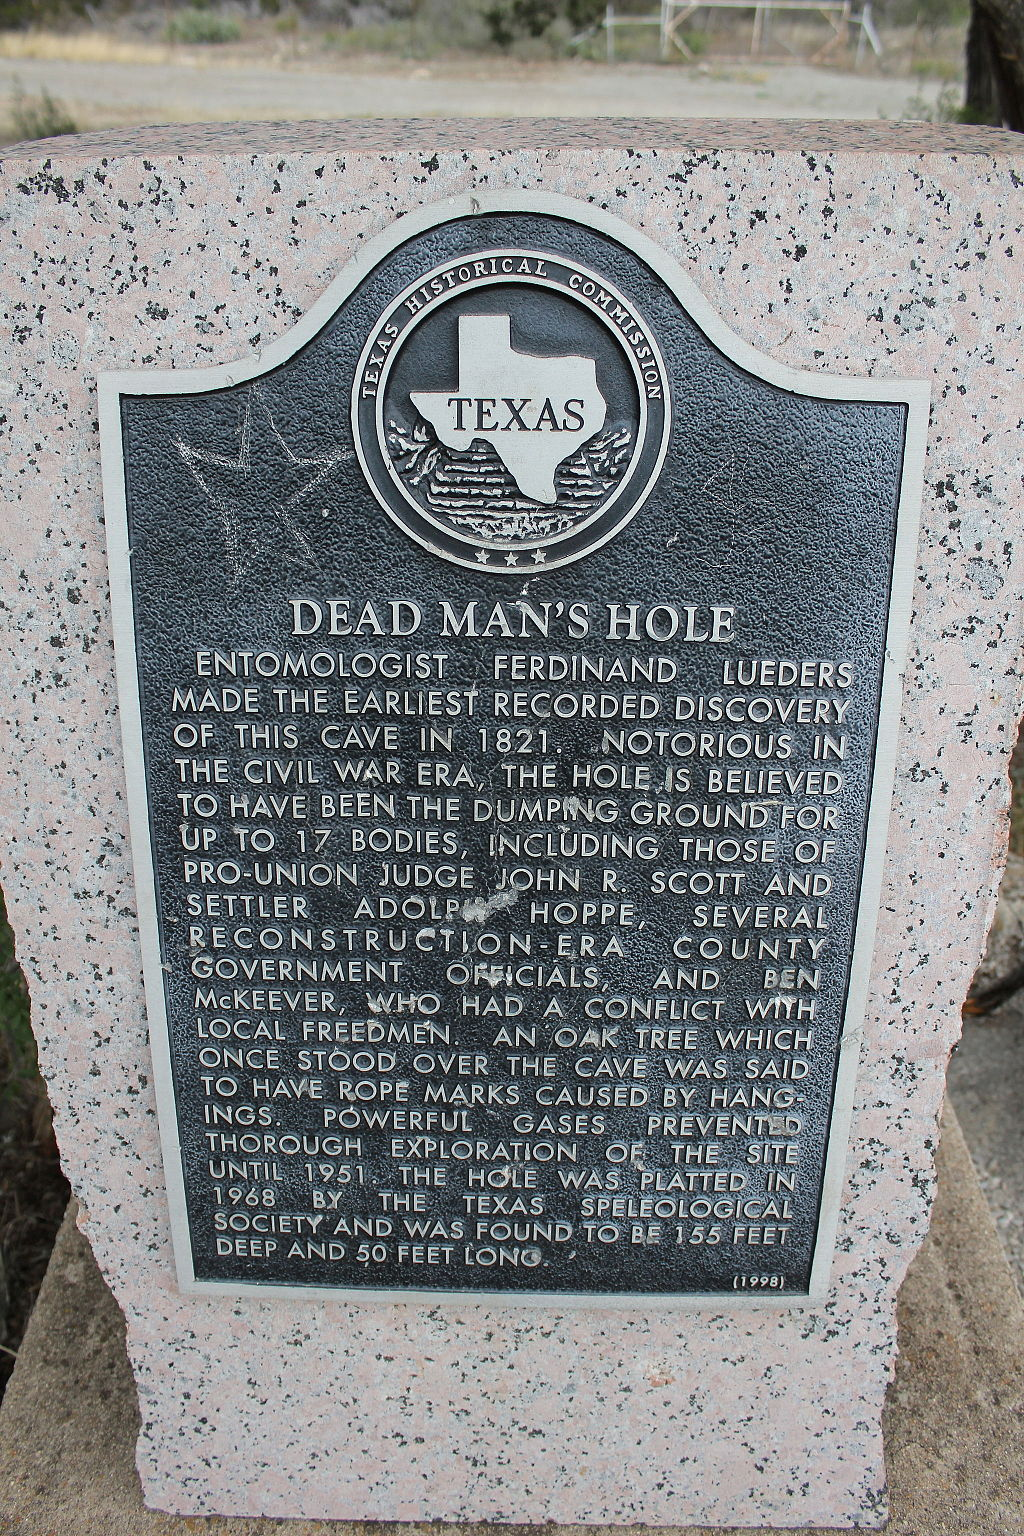 Dead Man's Hole: Do You Know the Dark Truth of Its Sinister Origin?